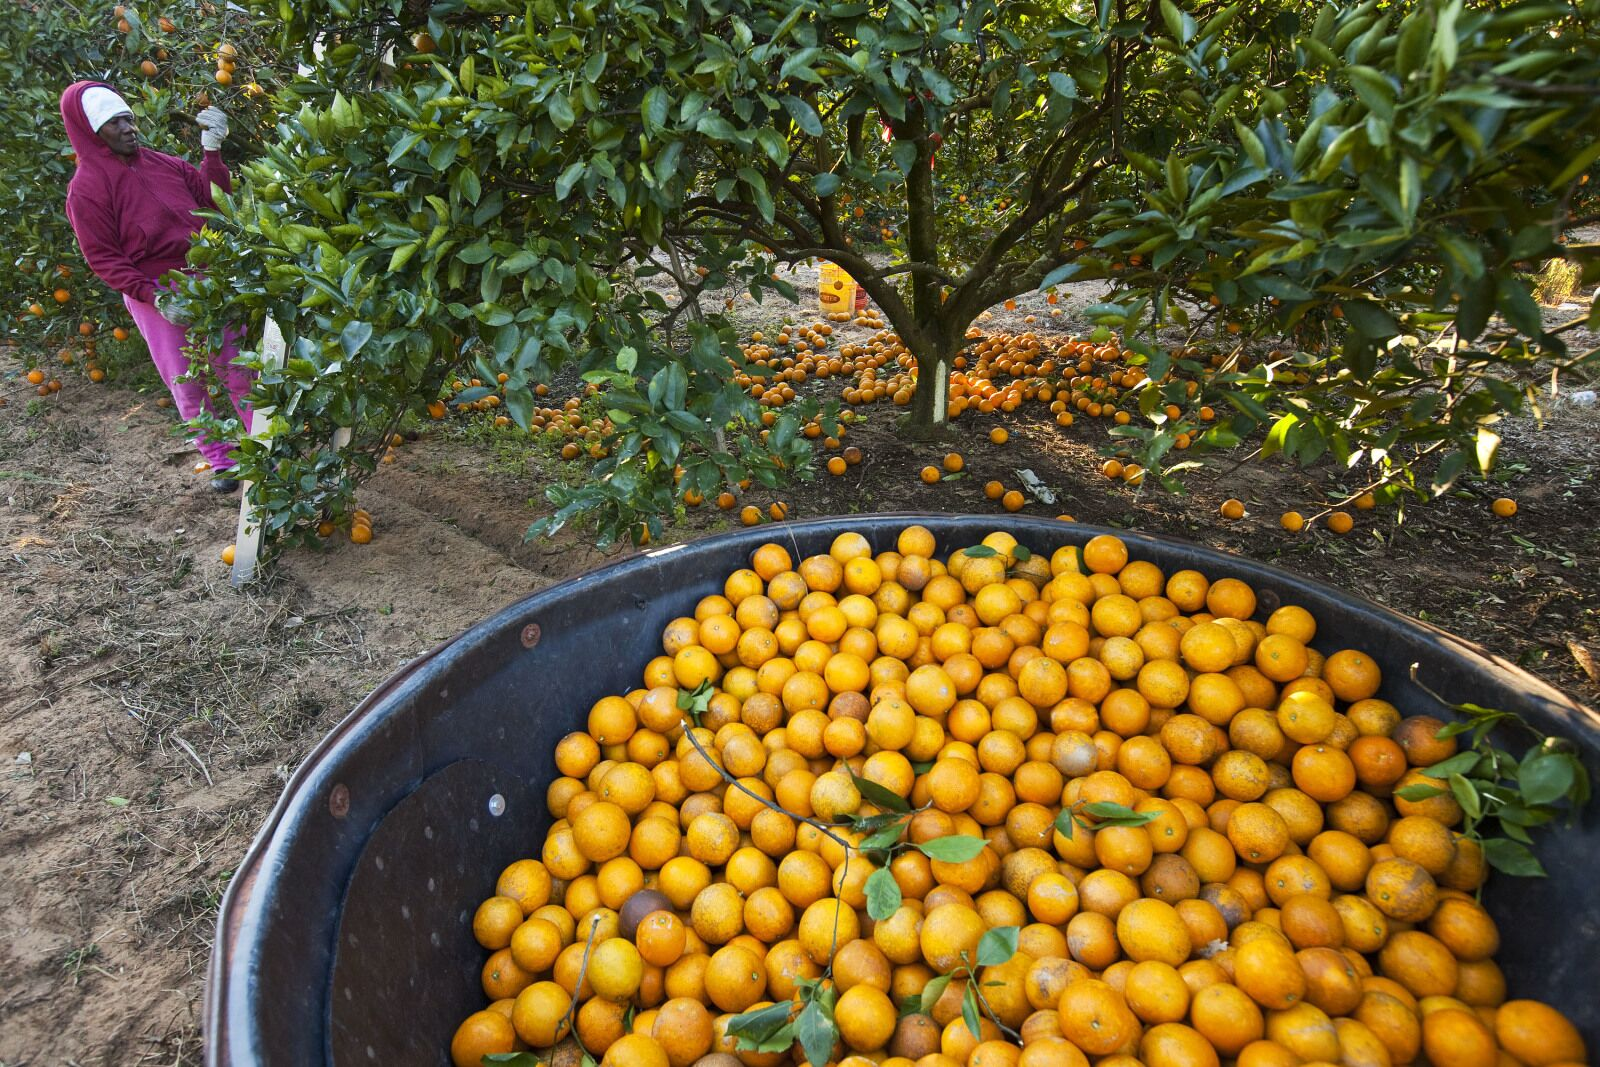 Dogs may be the answer to the citrus crisis in Florida